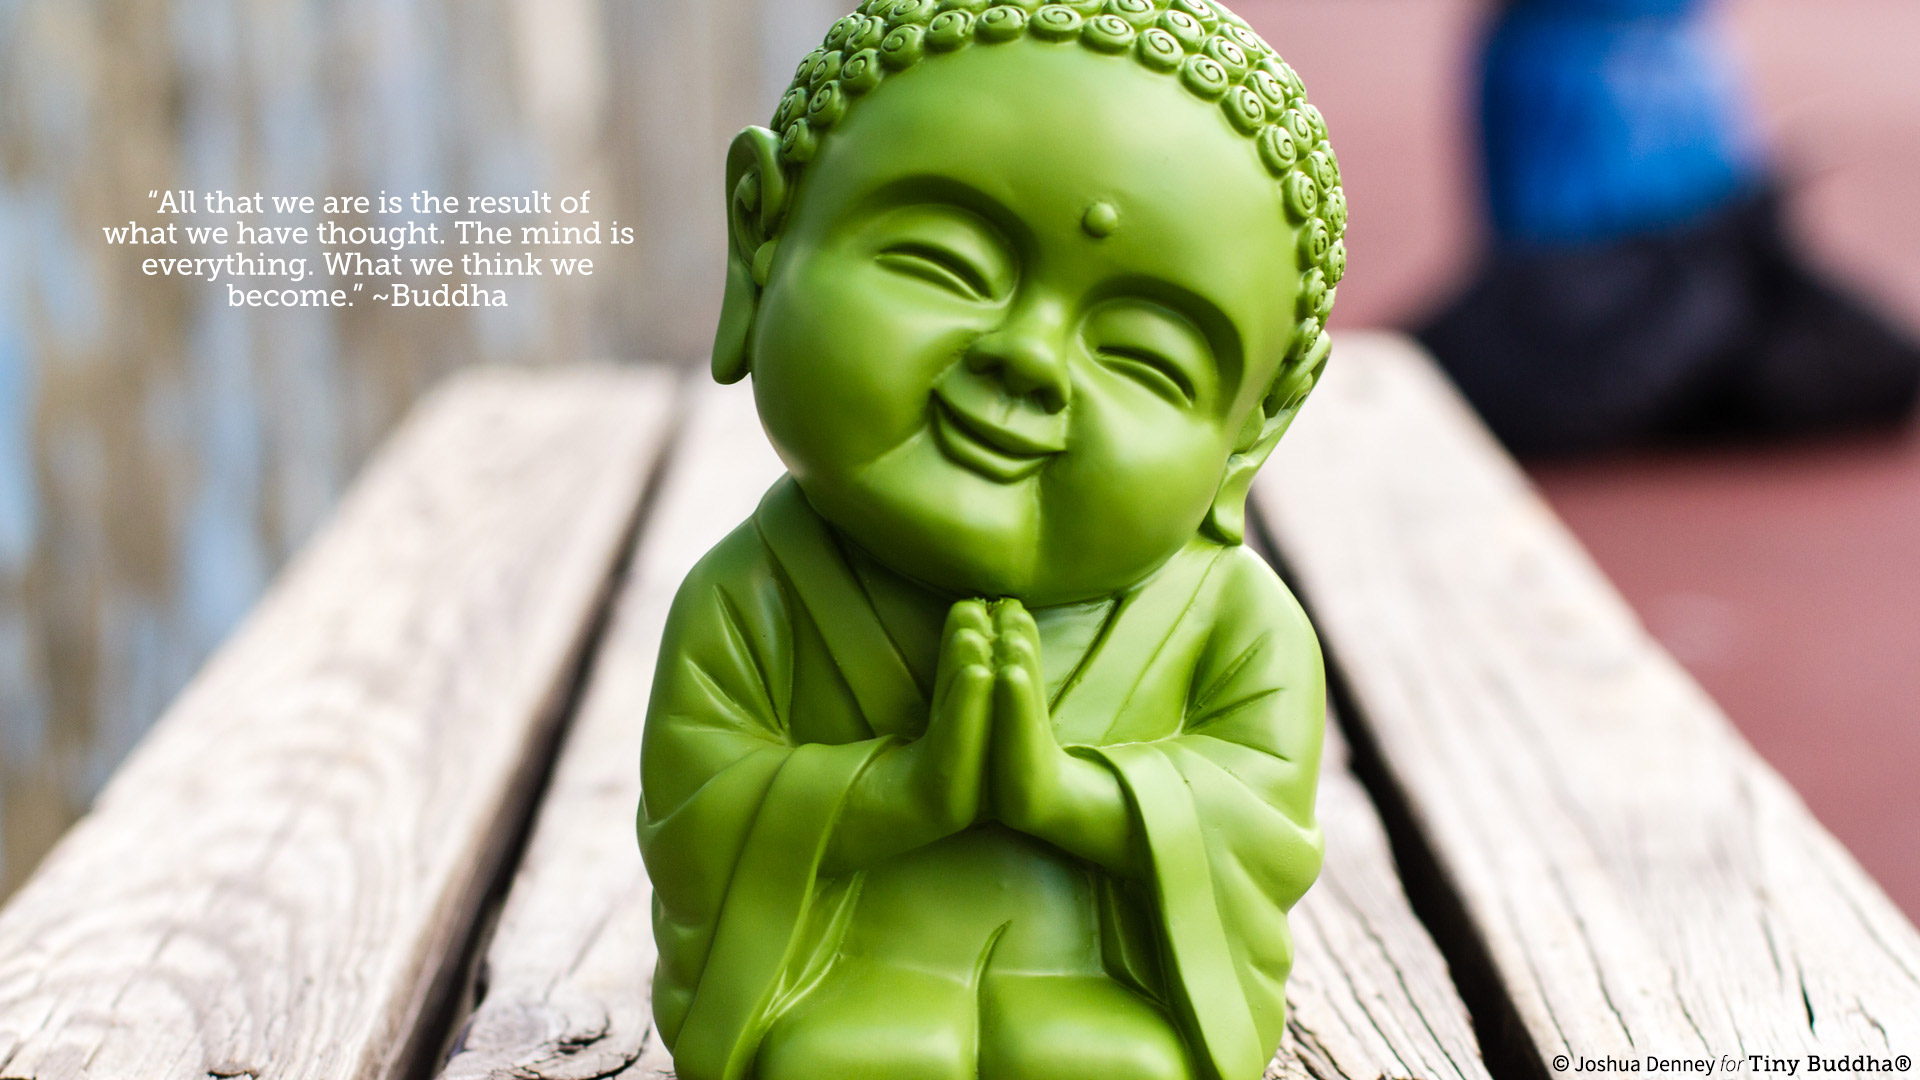 Buddha Wallpaper pictures HD green tiny